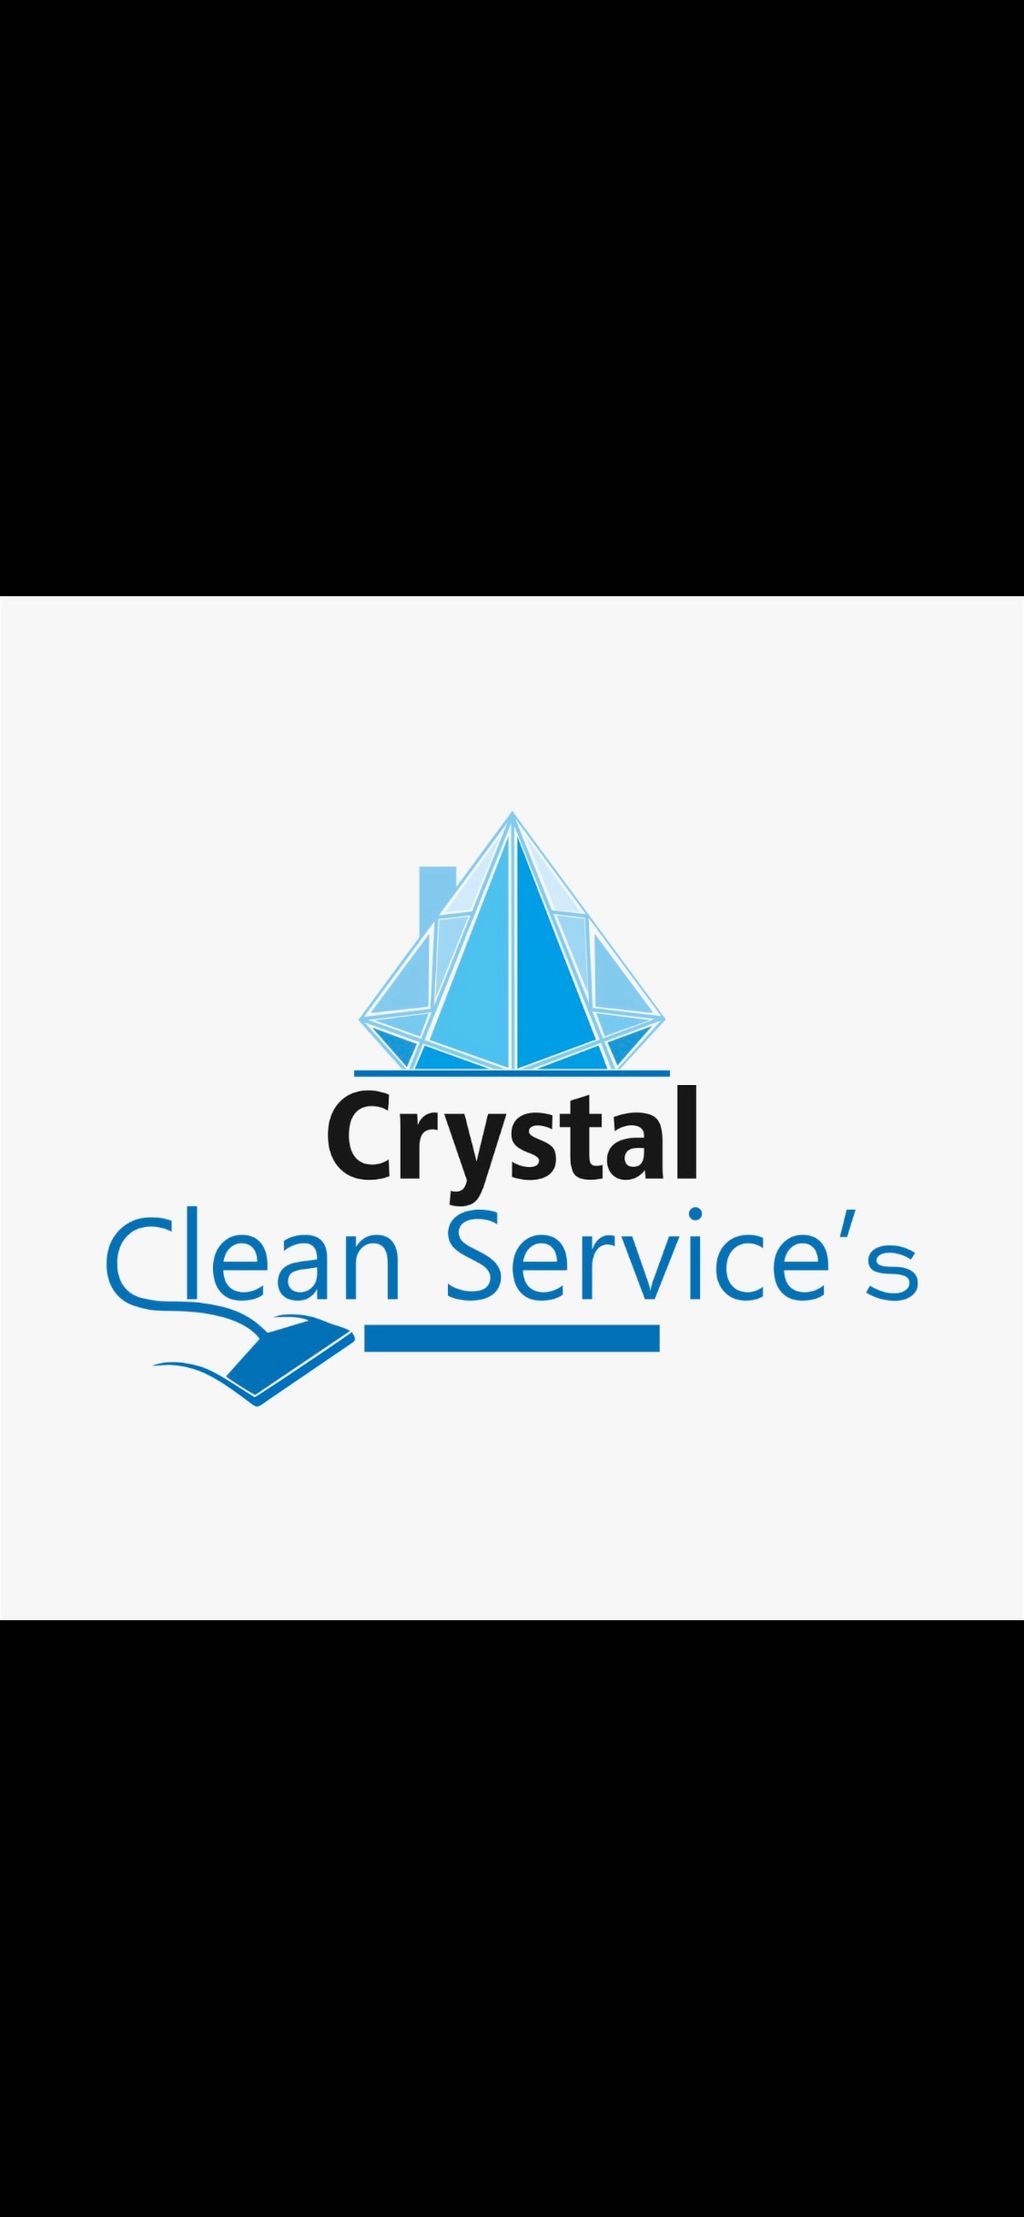 CRYSTAL CLEAN SERVICE'S